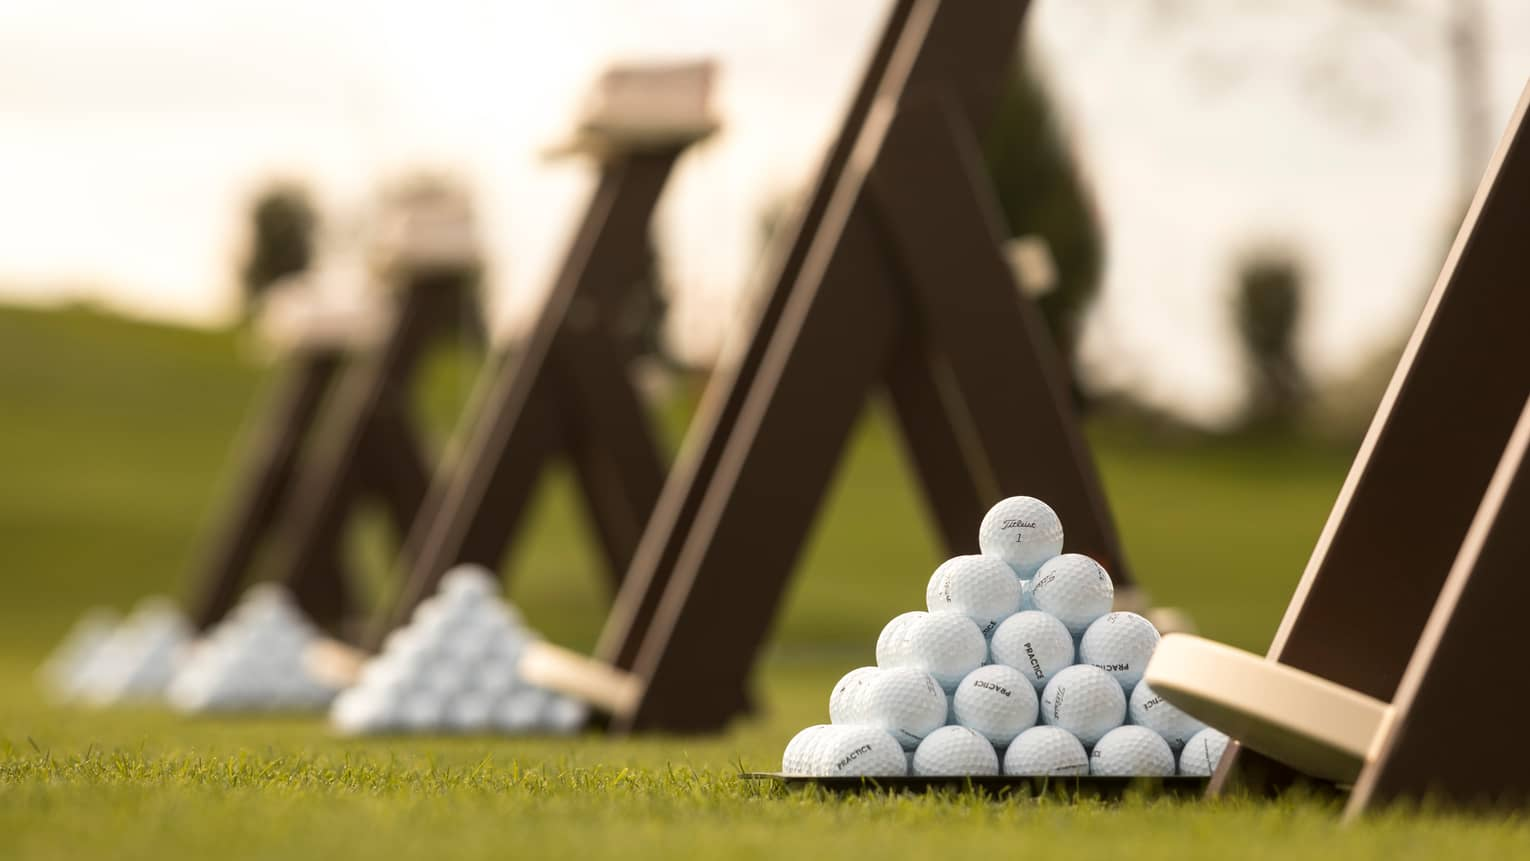 Stacks of white golf balls on lawn in front of wood panels